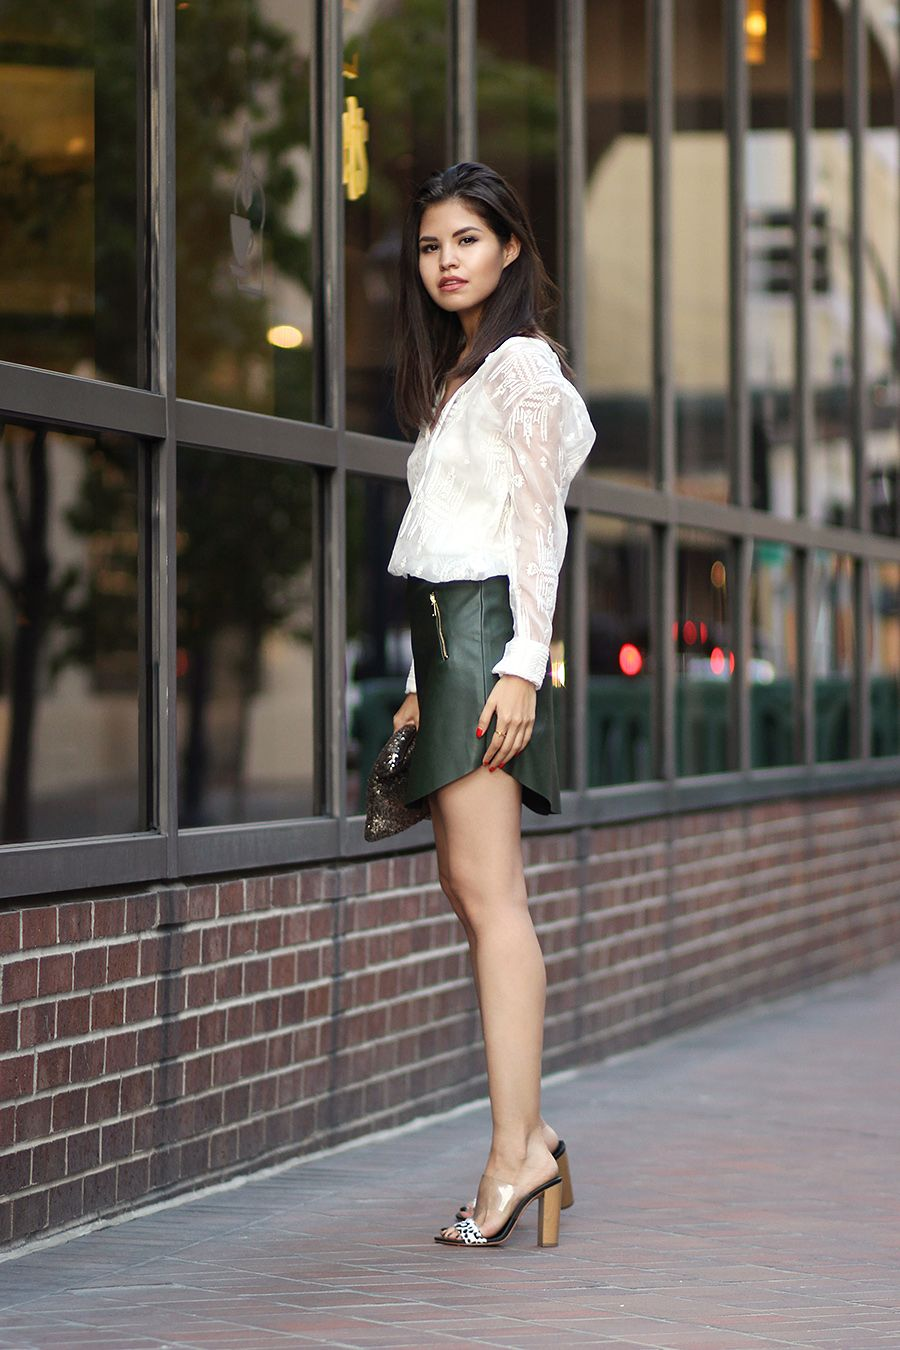 Silk & leather | Best Leather skirts ideas